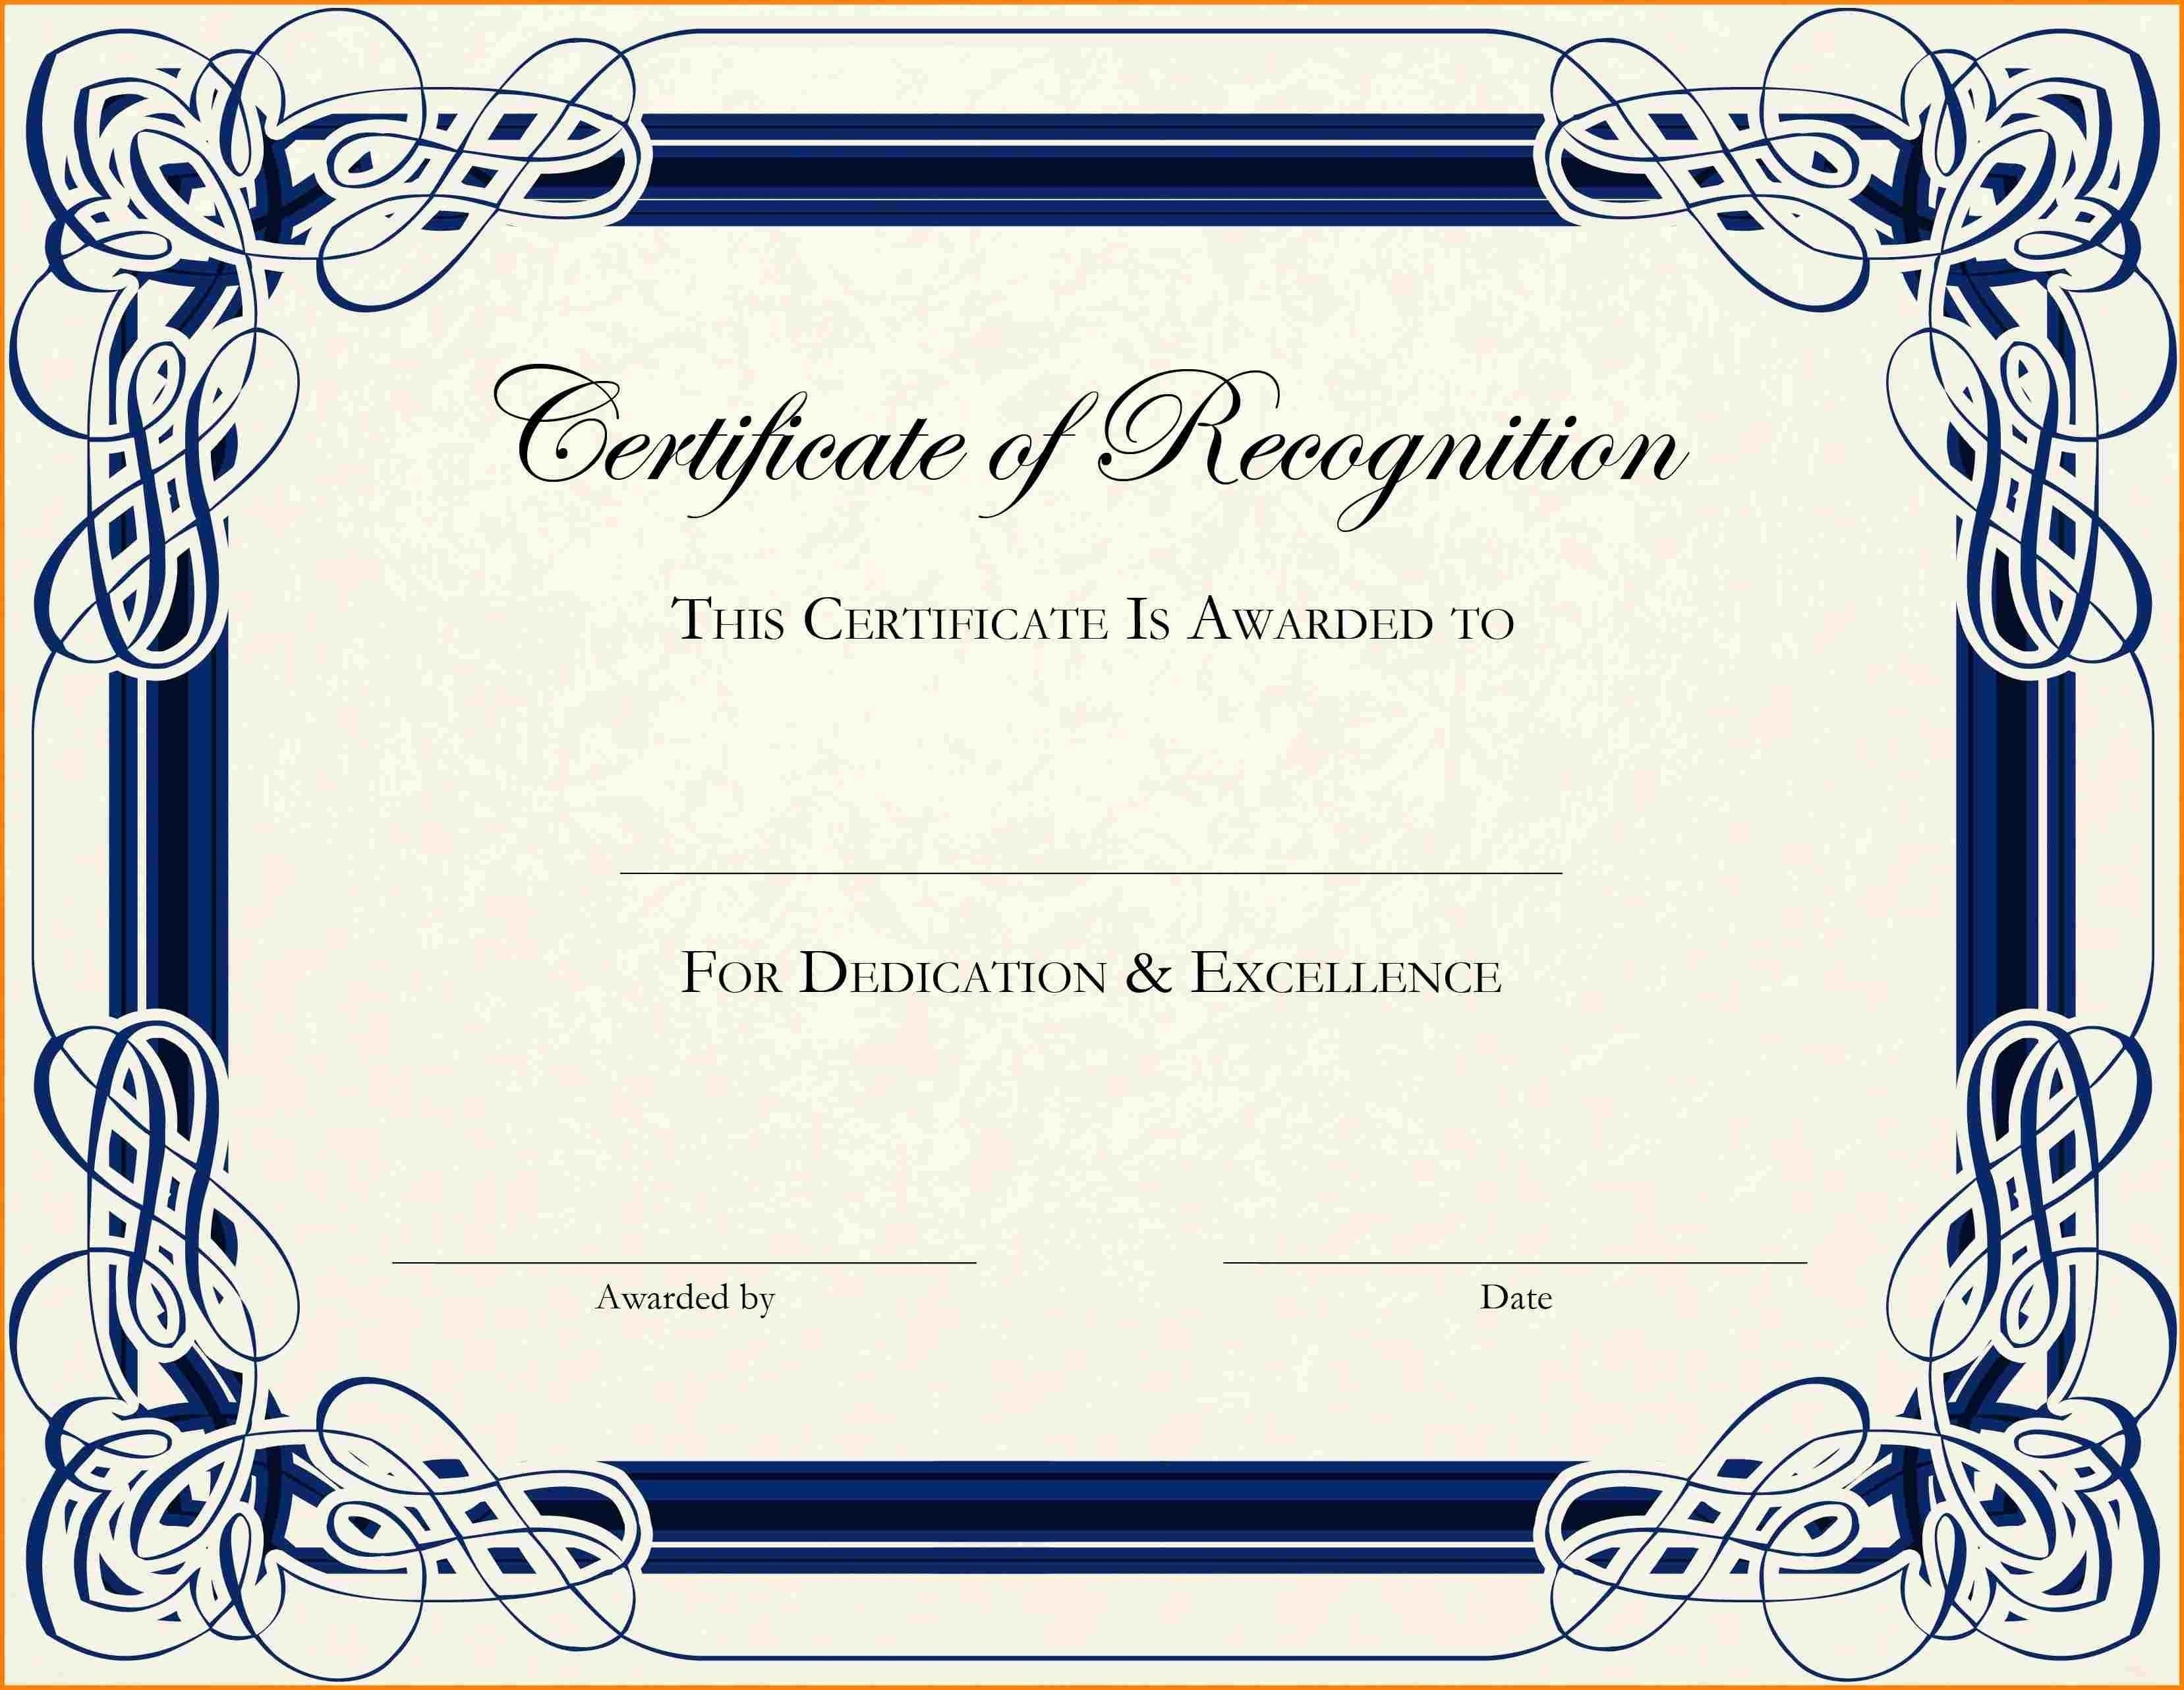 Certificate clipart awarded. Template download best of